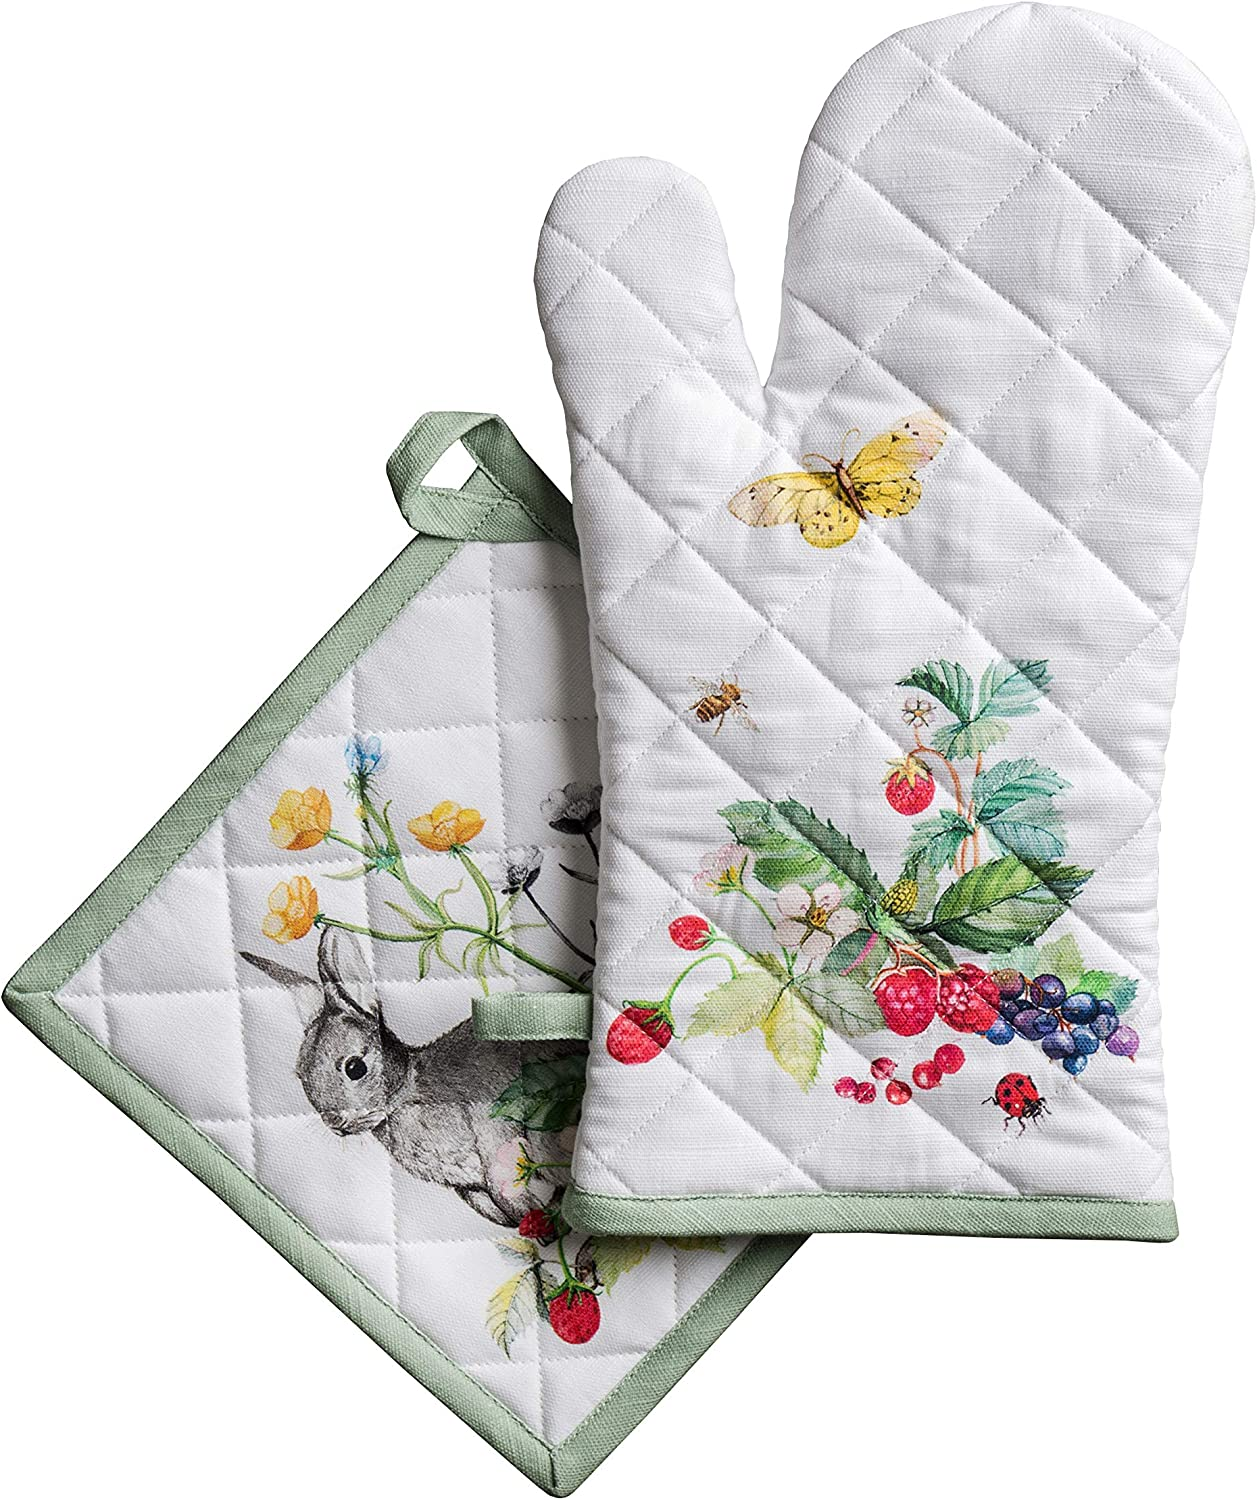 Maison d' Hermine Printemps 100% Cotton Set of Oven Mitt (7.5 Inch by 13 Inch) and Pot Holder (8 Inch by 8 Inch) for BBQ | Cooking | Baking | Grilling | Microwave | Barbecue | Spring/Summer